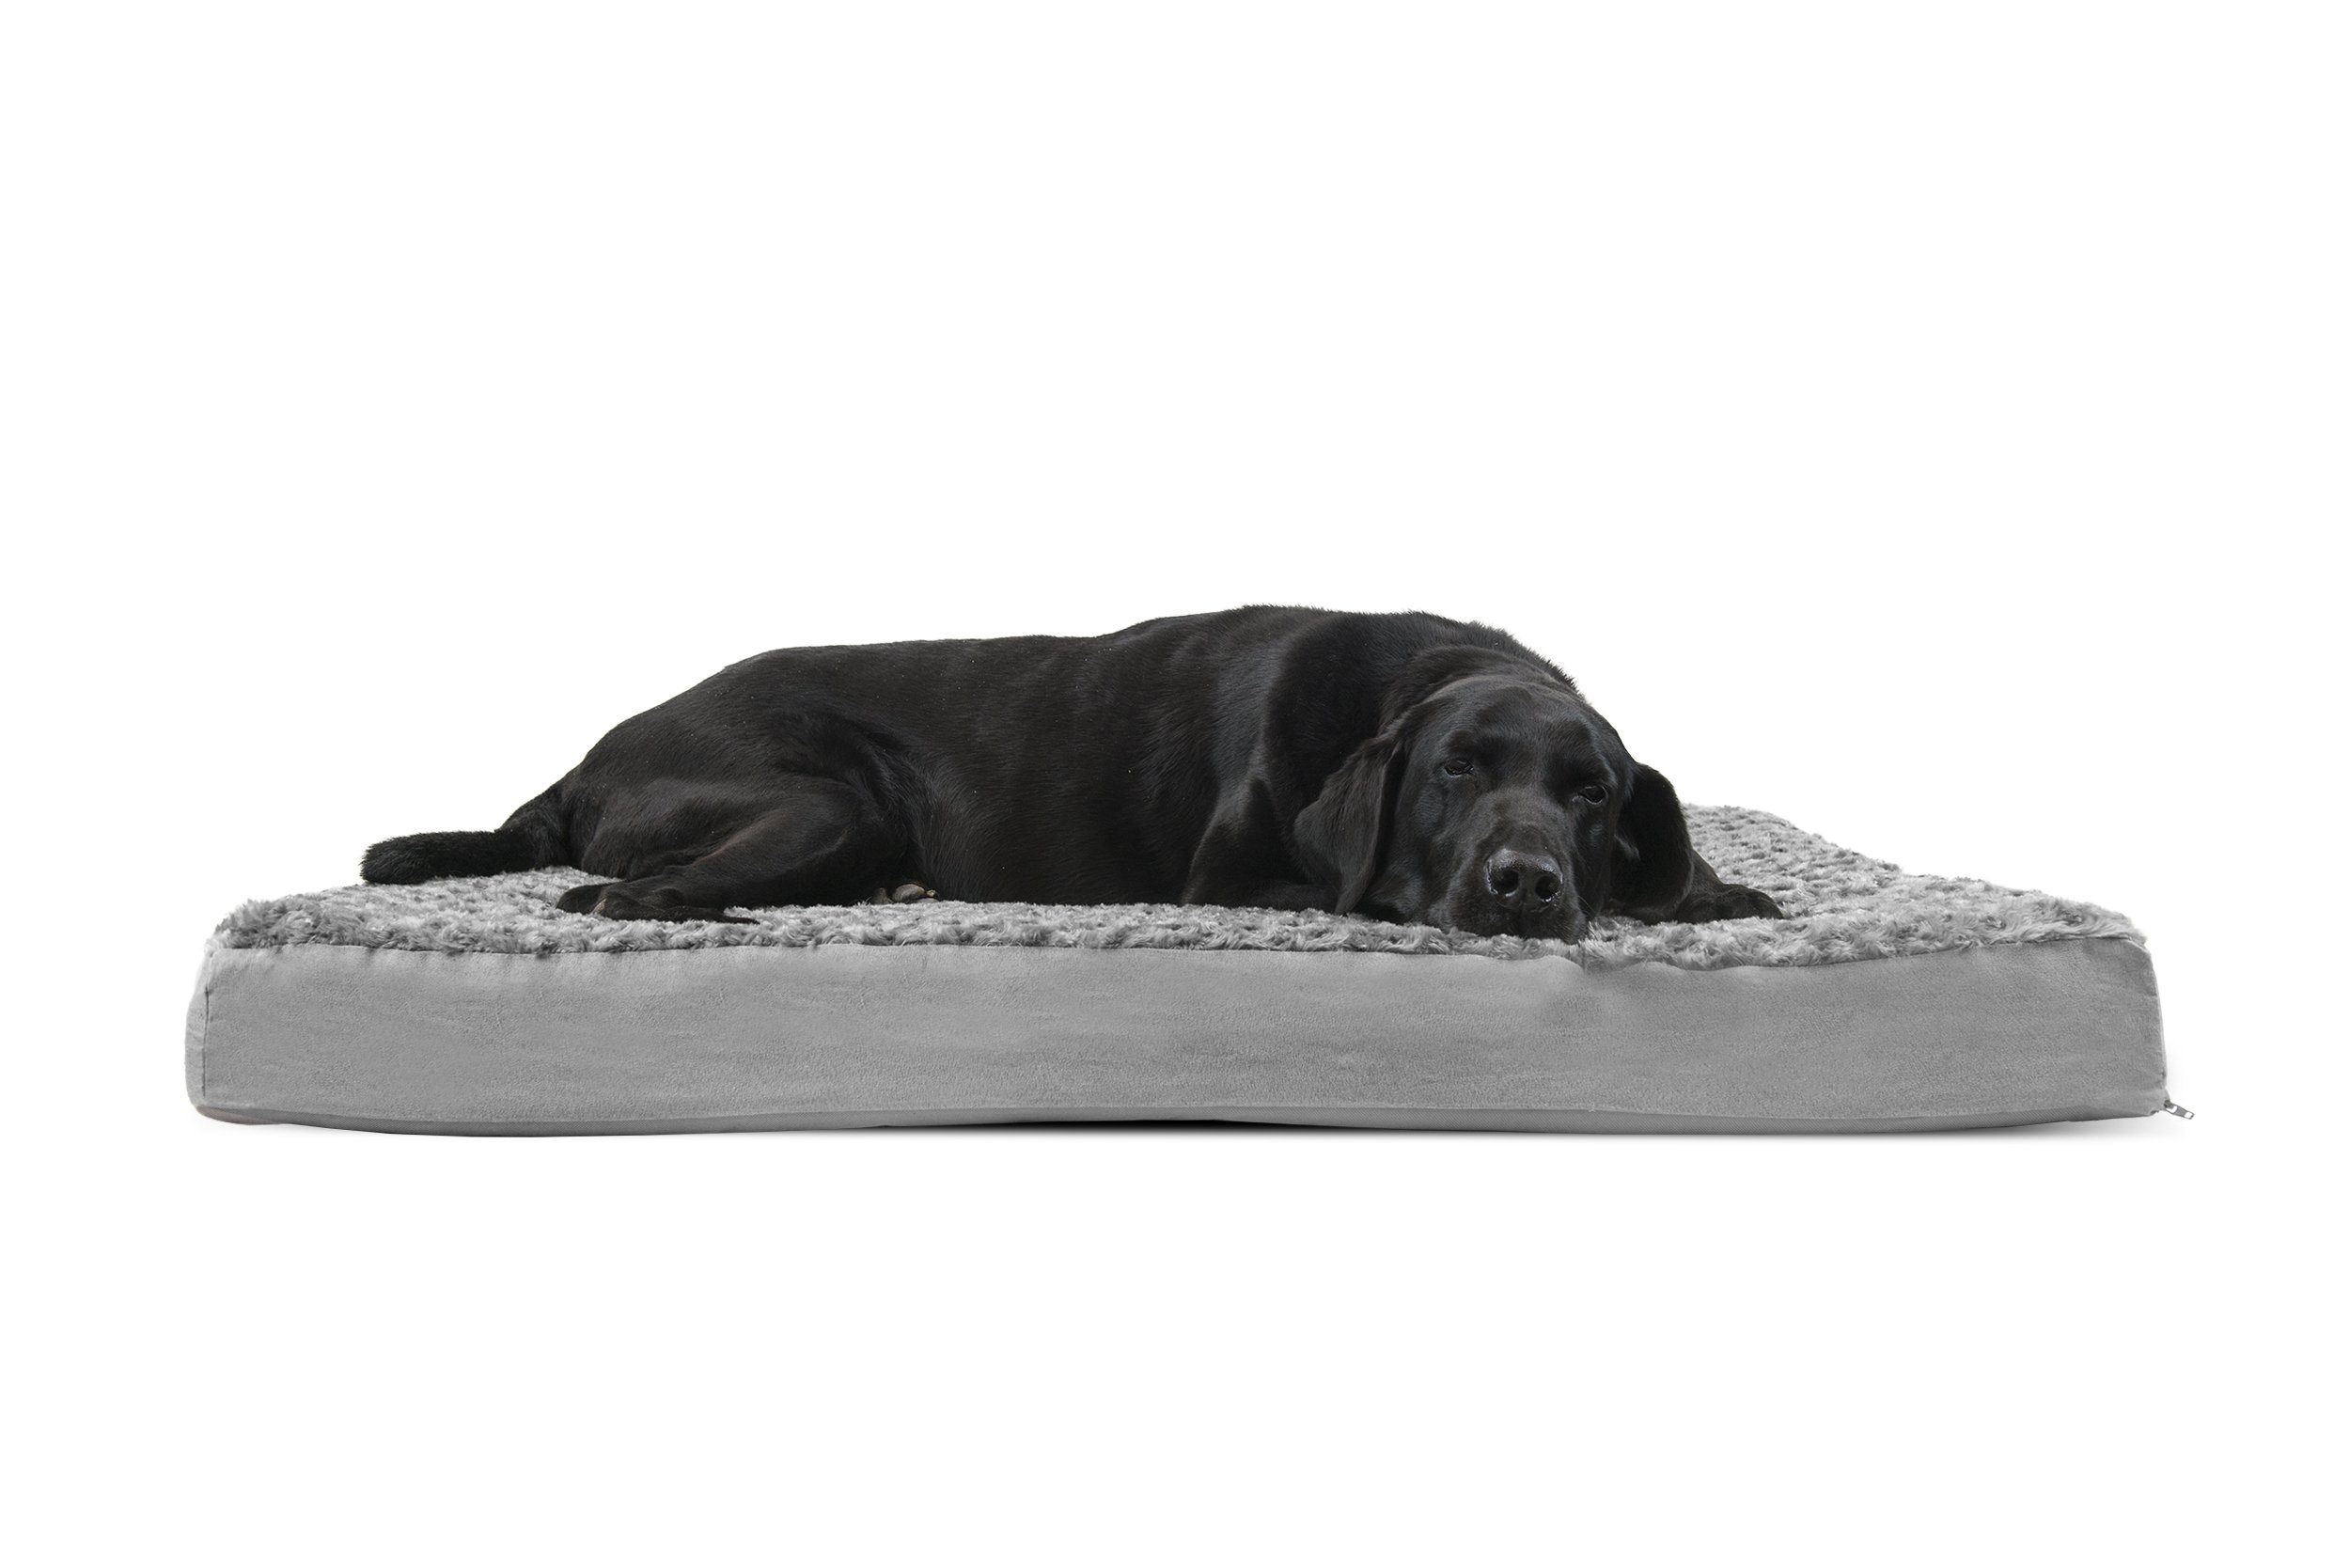 FurHaven Deluxe Orthopedic Pet Bed Mattress for Dogs and Cats, Gray, Jumbo